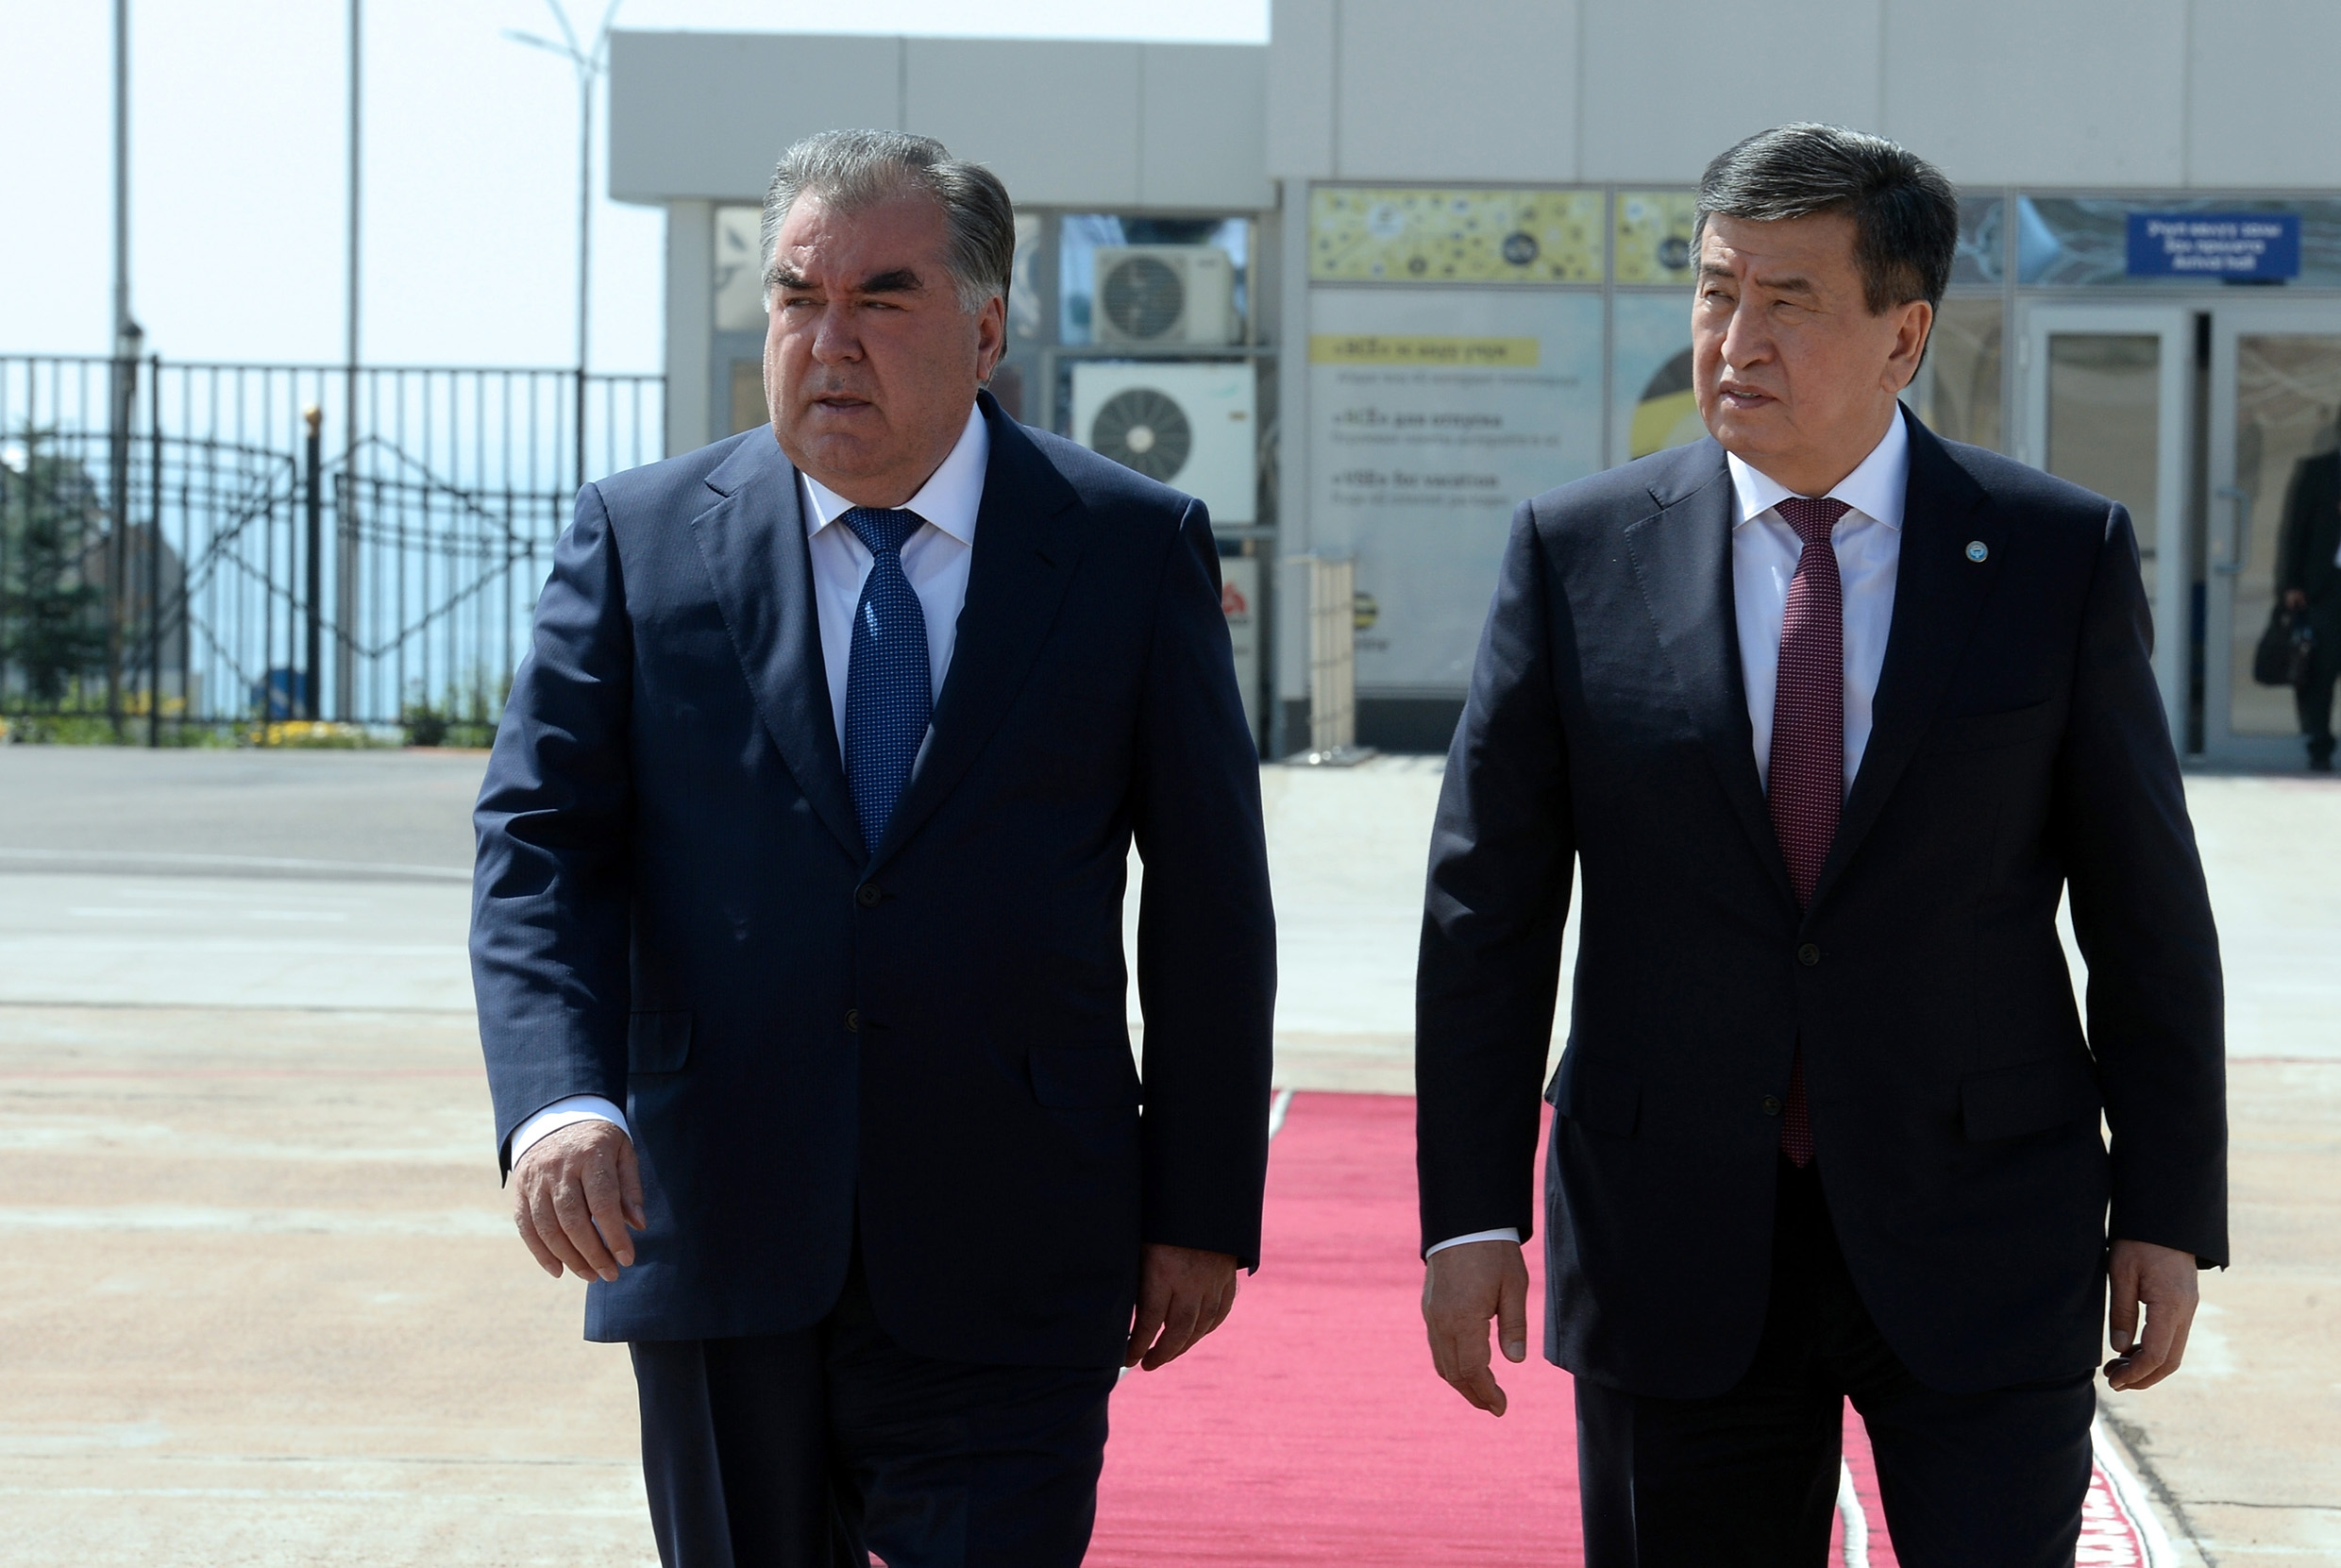 Not Reservoir Dogs: Sooronbai Jeenbekov, right, seen here with Tajik President Emomali Rahmon. (Photo: Kyrgyz presidential website)